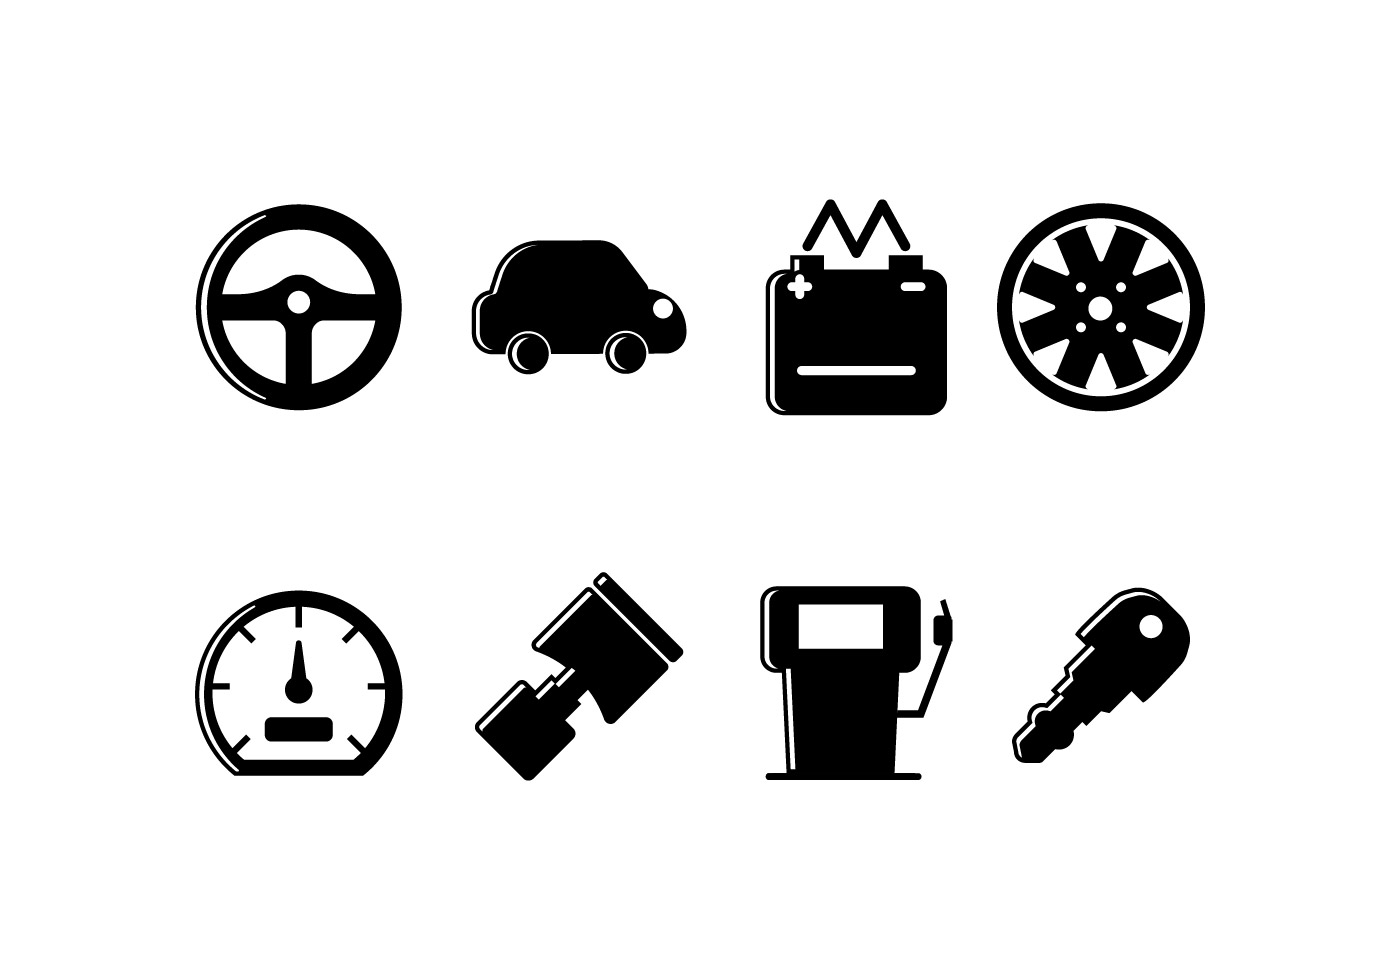 Related to Car Icon